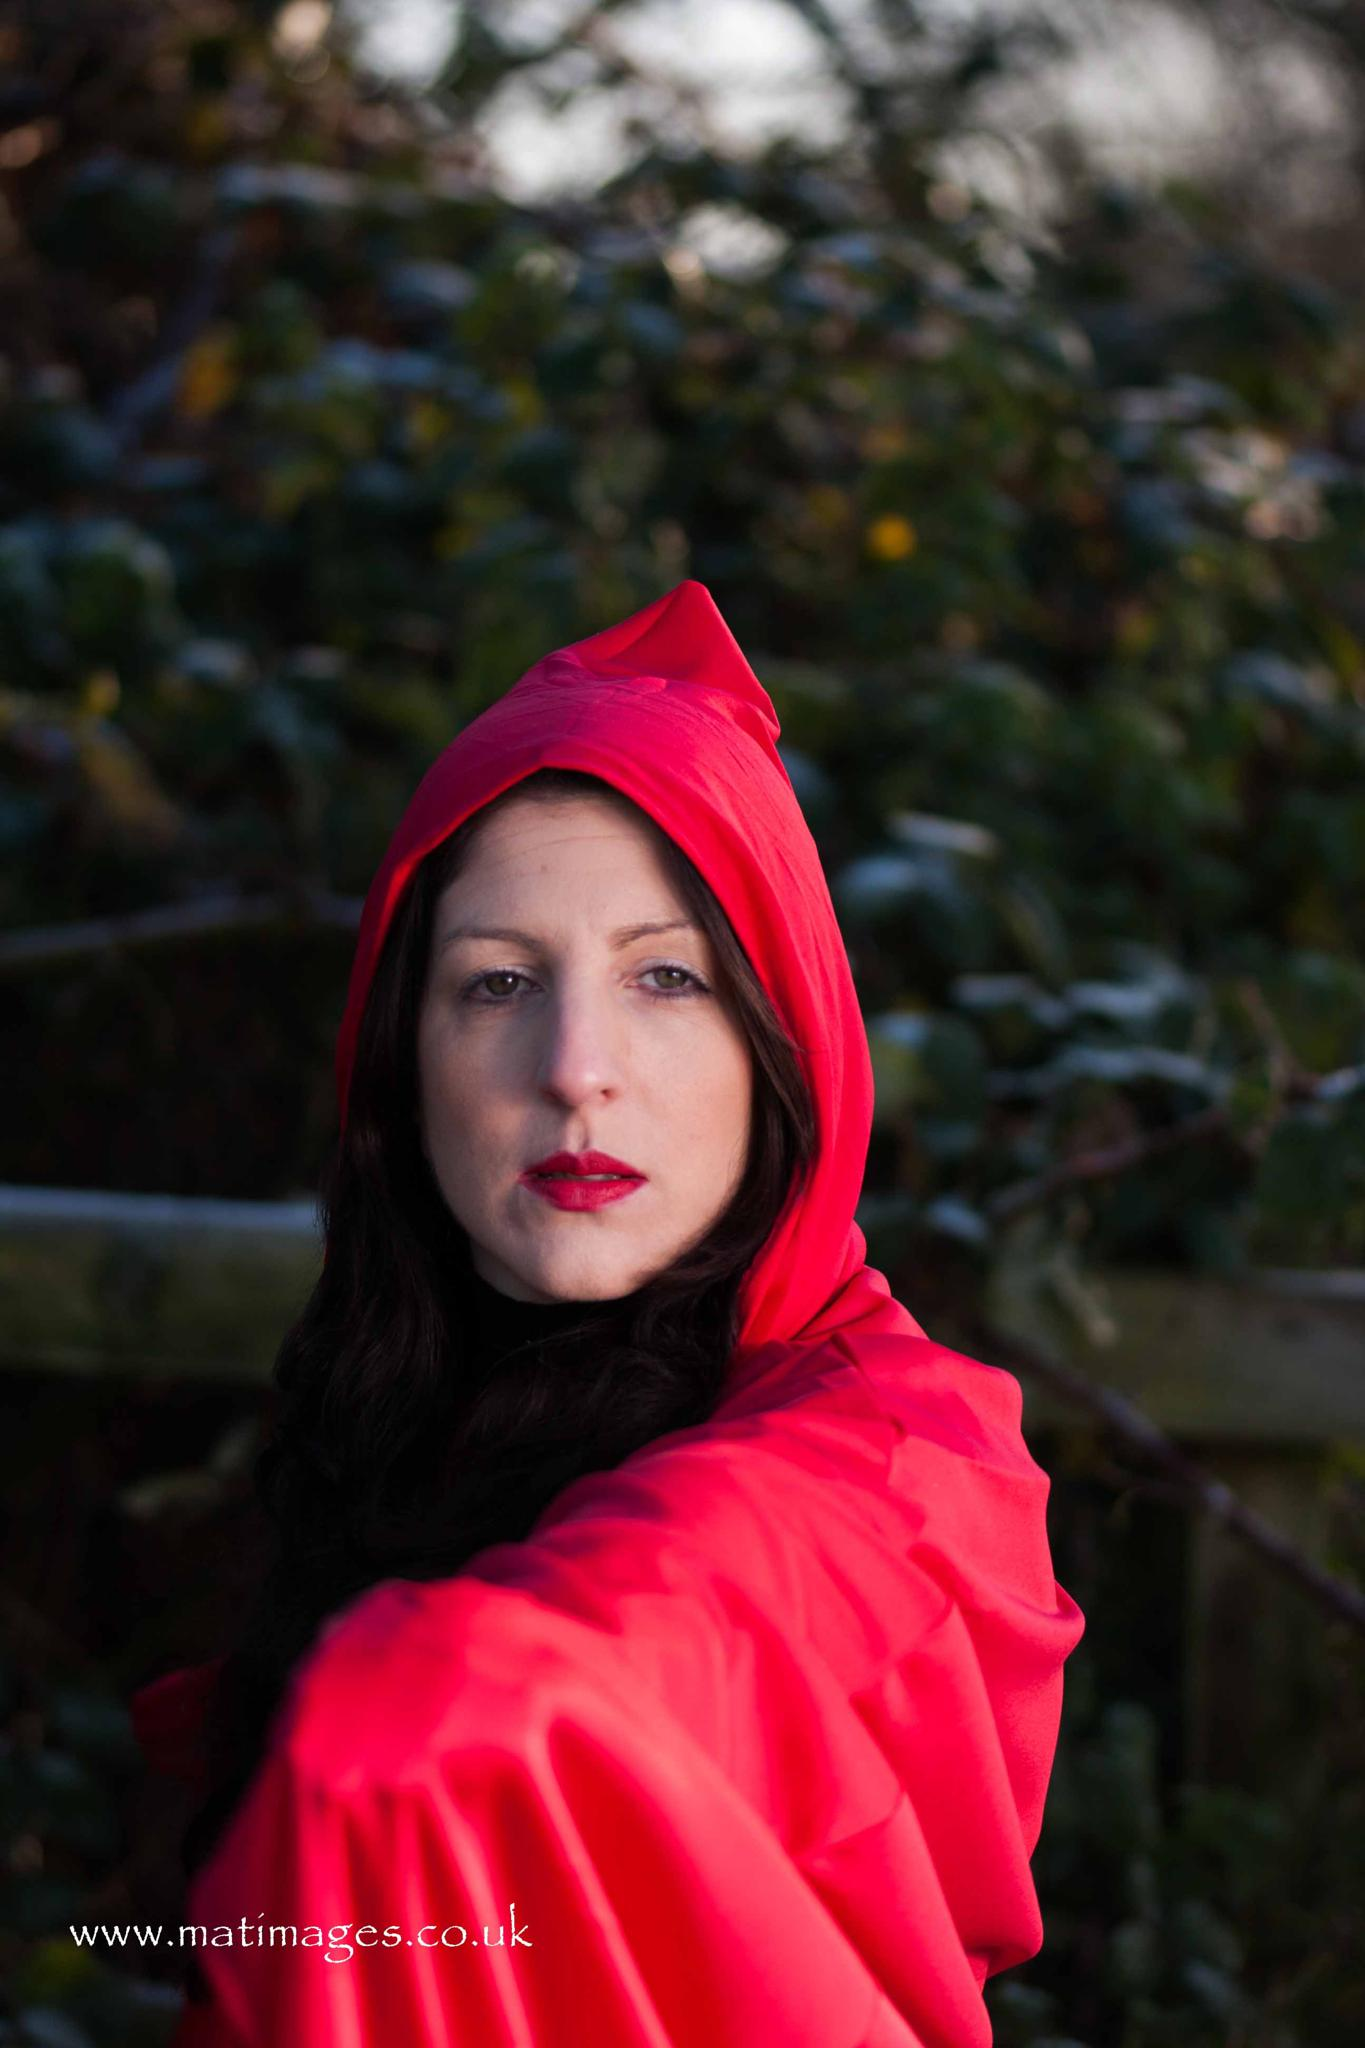 Red riding hood by Mat Images